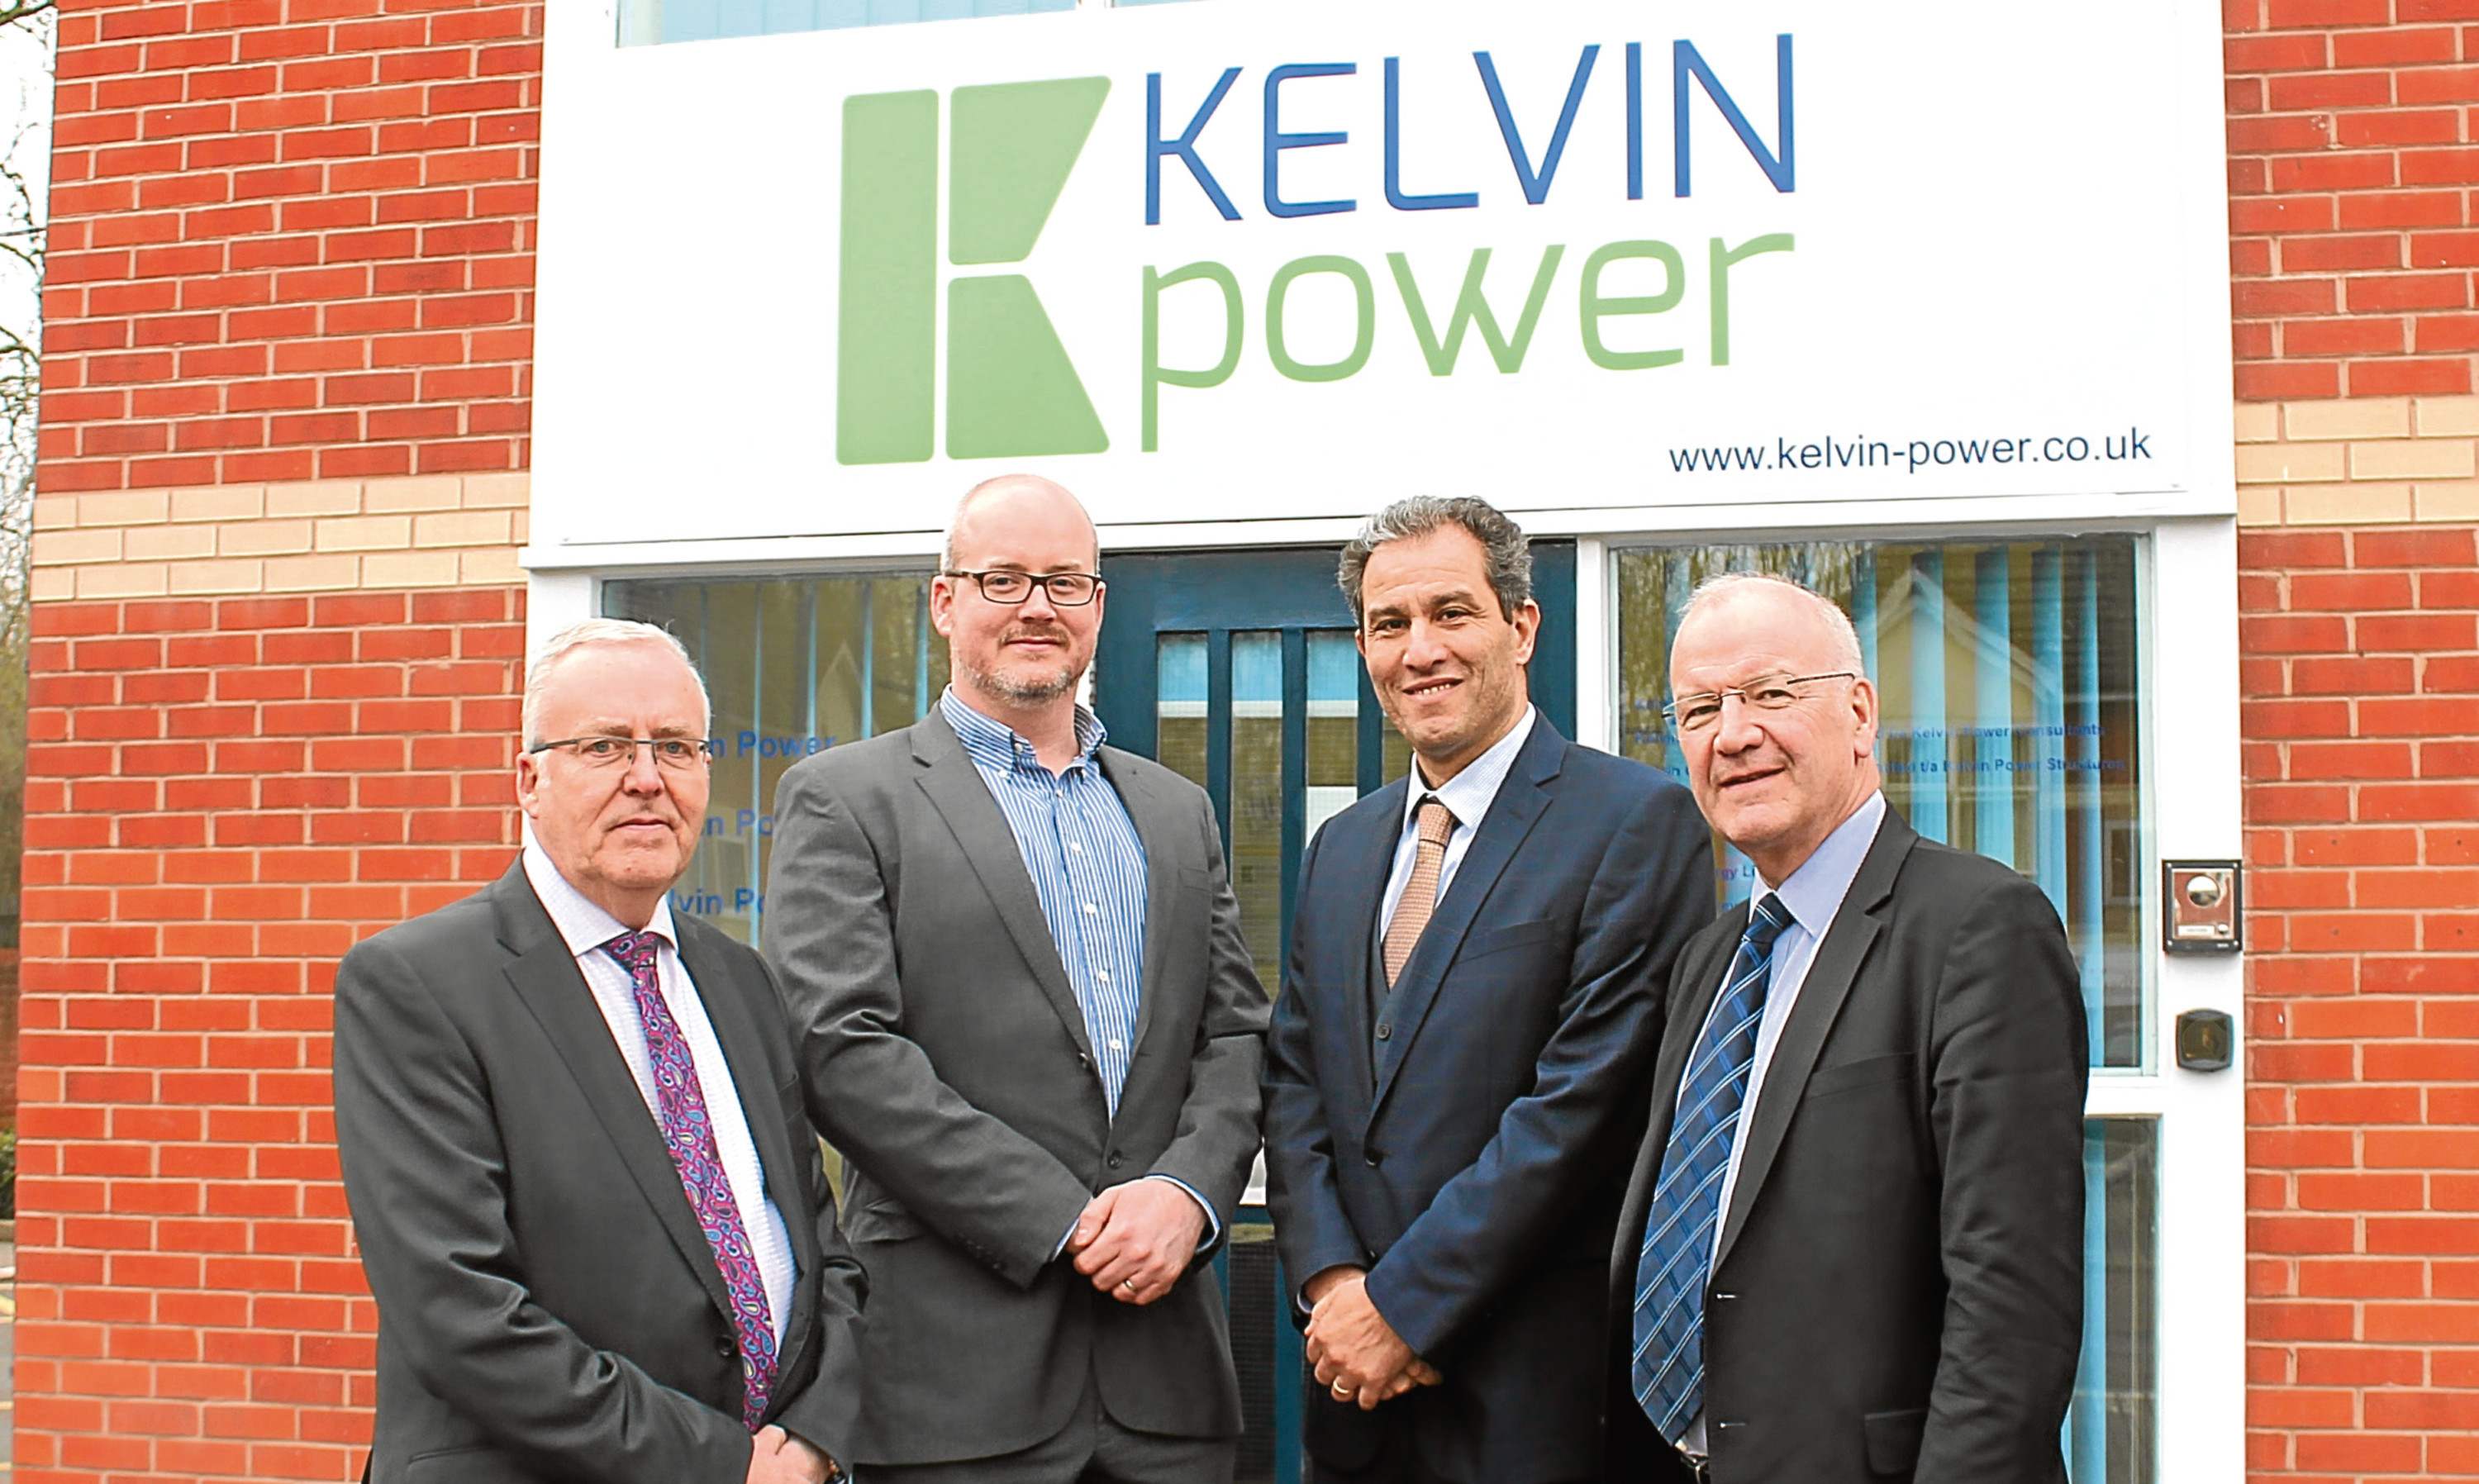 John Brennan and Alastair Brennan of Kelvin Power with VINCI Energies Rochdi Ziyat and Patrice Mantz.